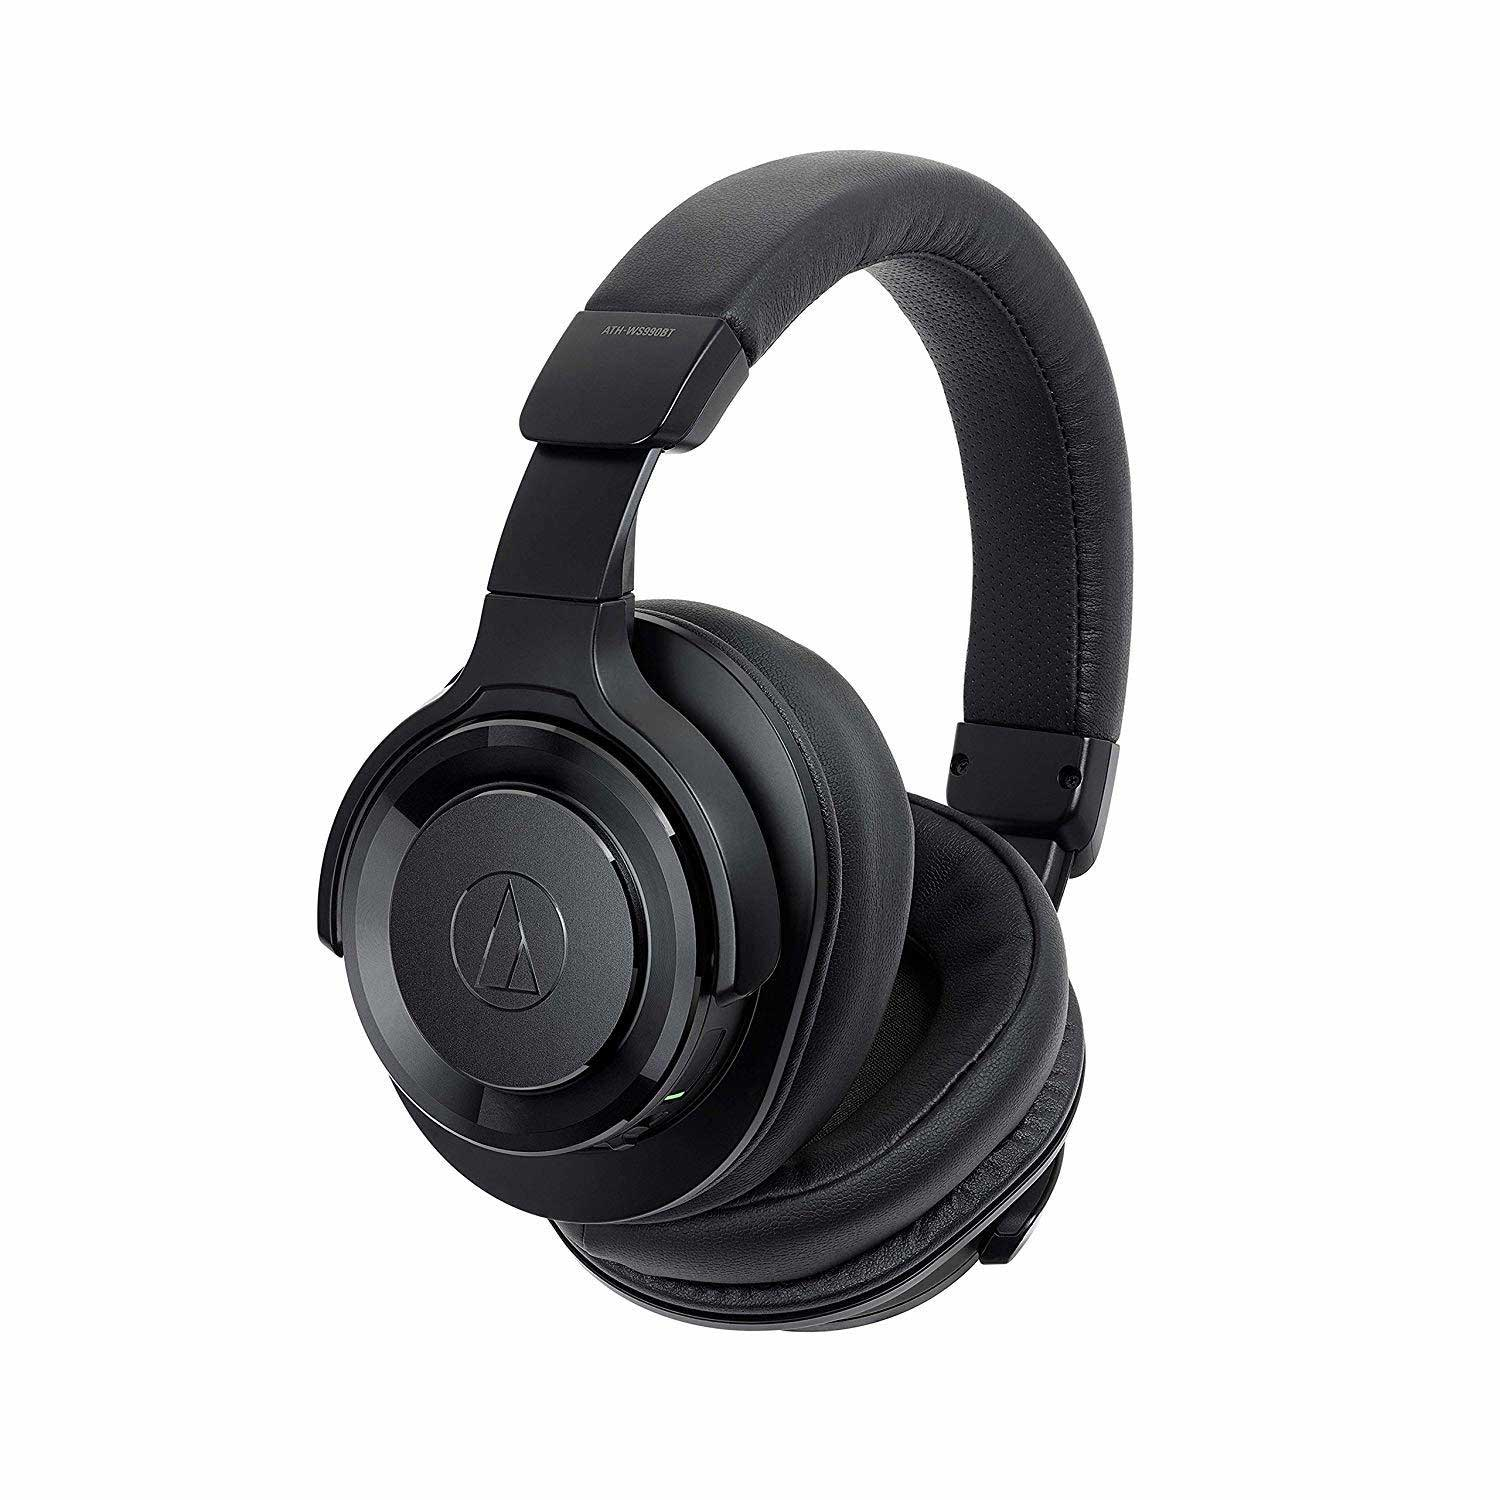 Audio-Technica ATH-WS990BT Solid Bass Bluetooth Wireless Over-Ear Headphones with Built-In Mic & Control